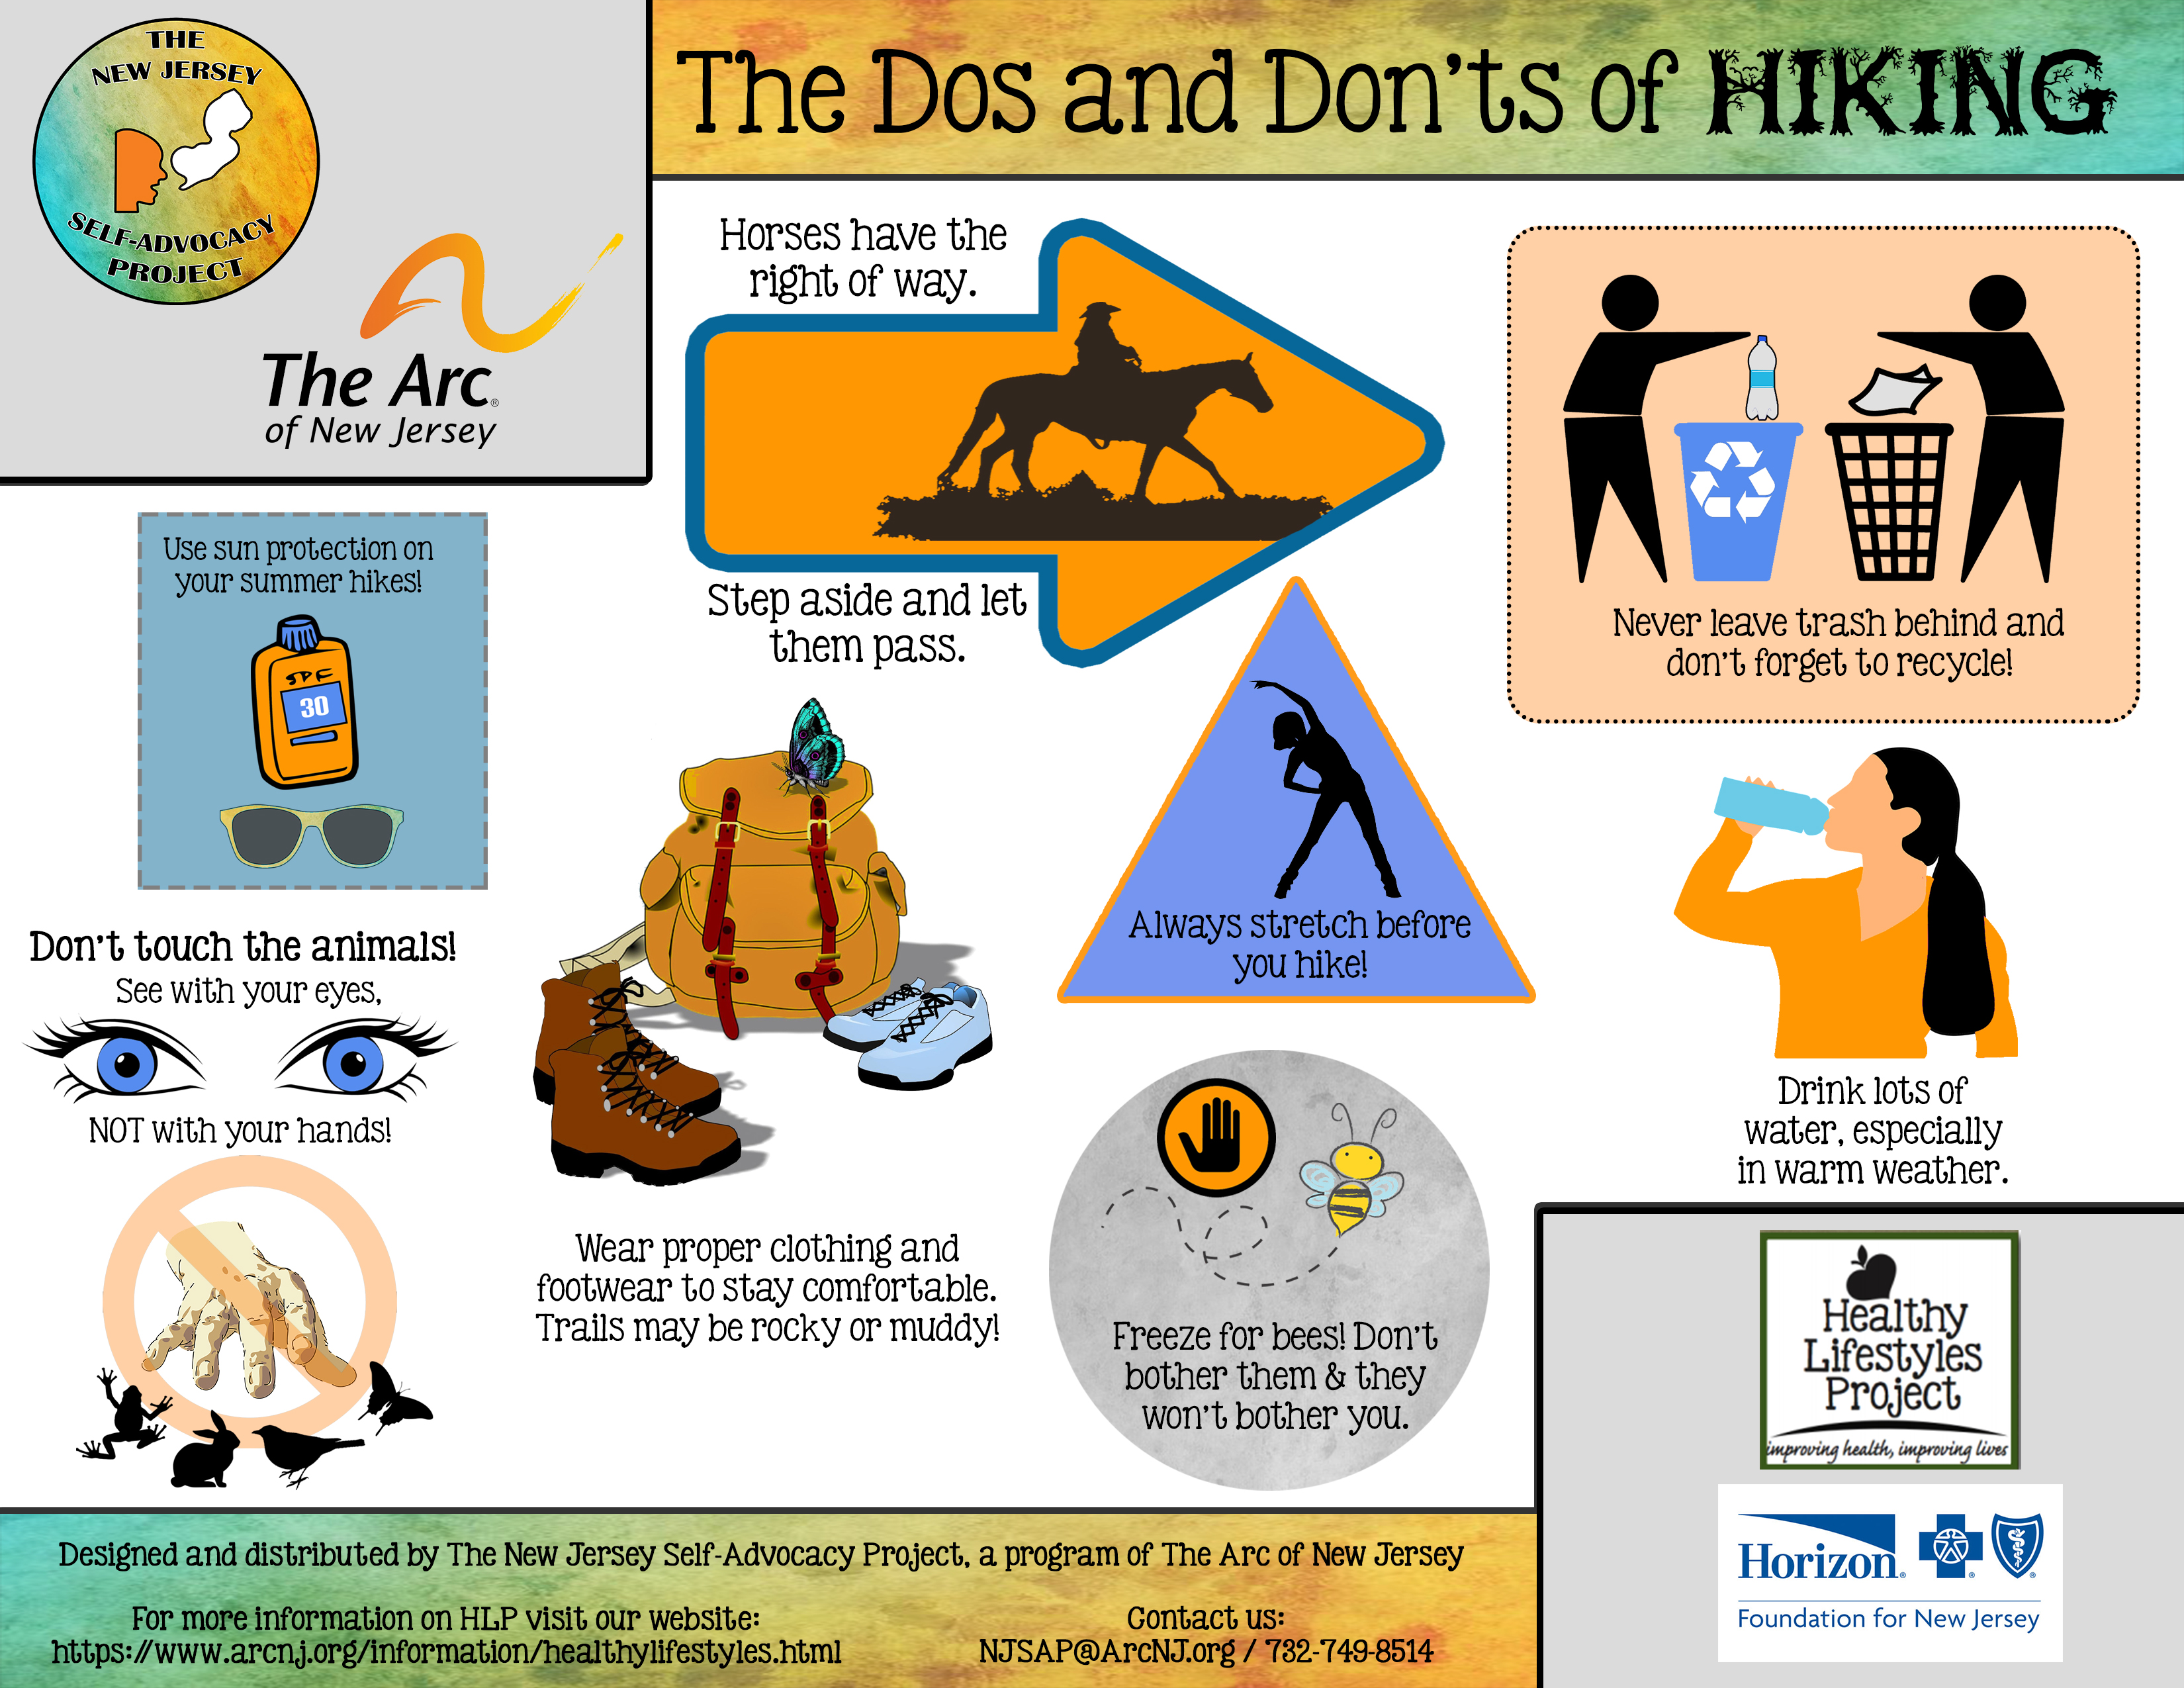 The Dos and Don'ts of Hiking